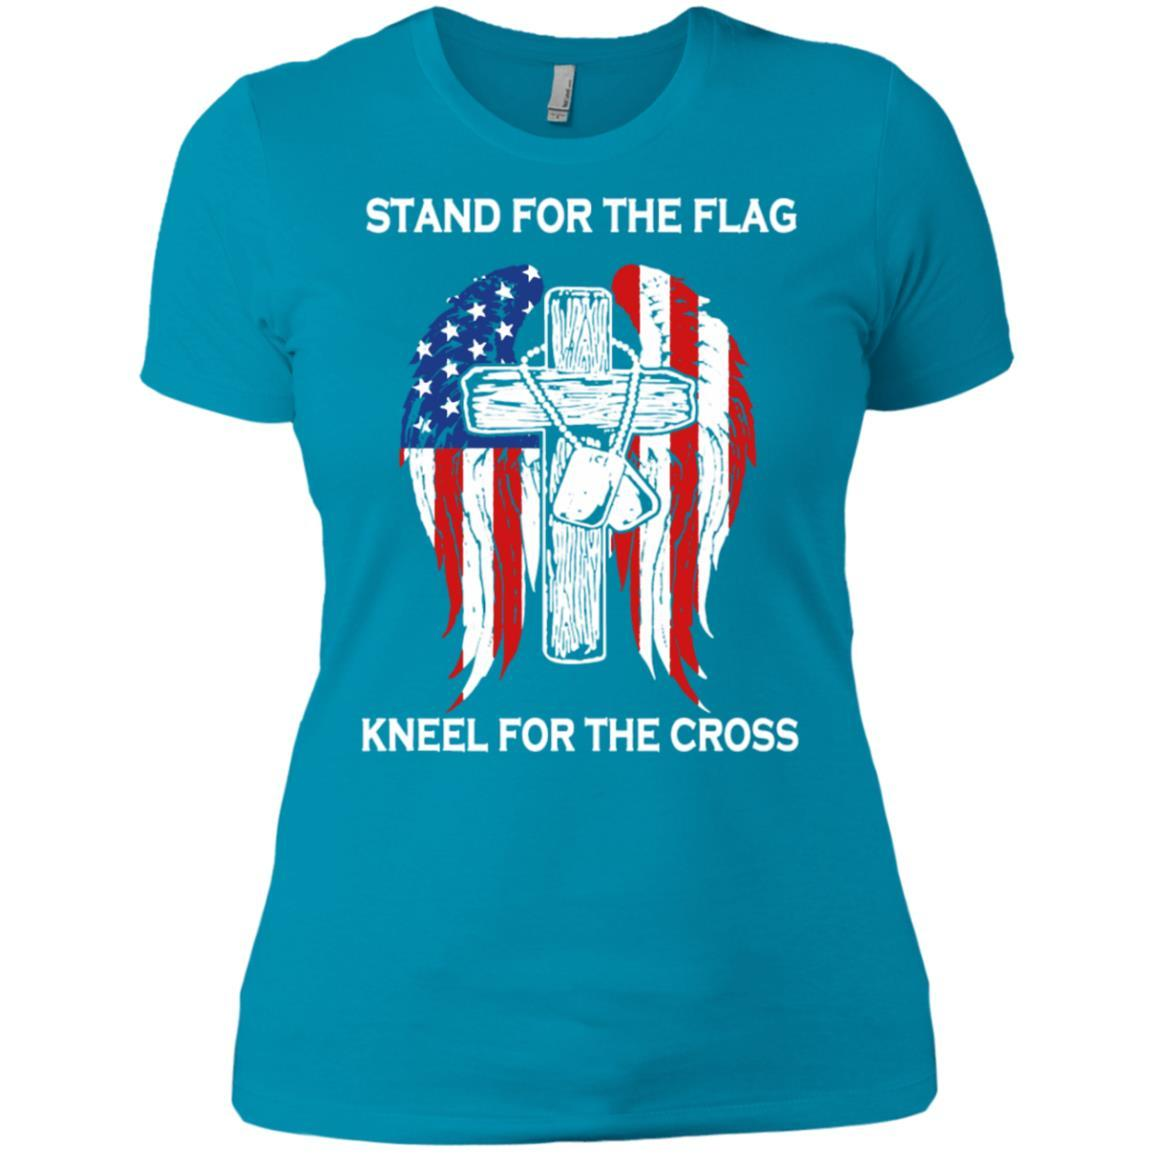 Stand For The Flag Kneel For The Cross - Ladies' Boyfriend T-Shirt Style / Color / Size